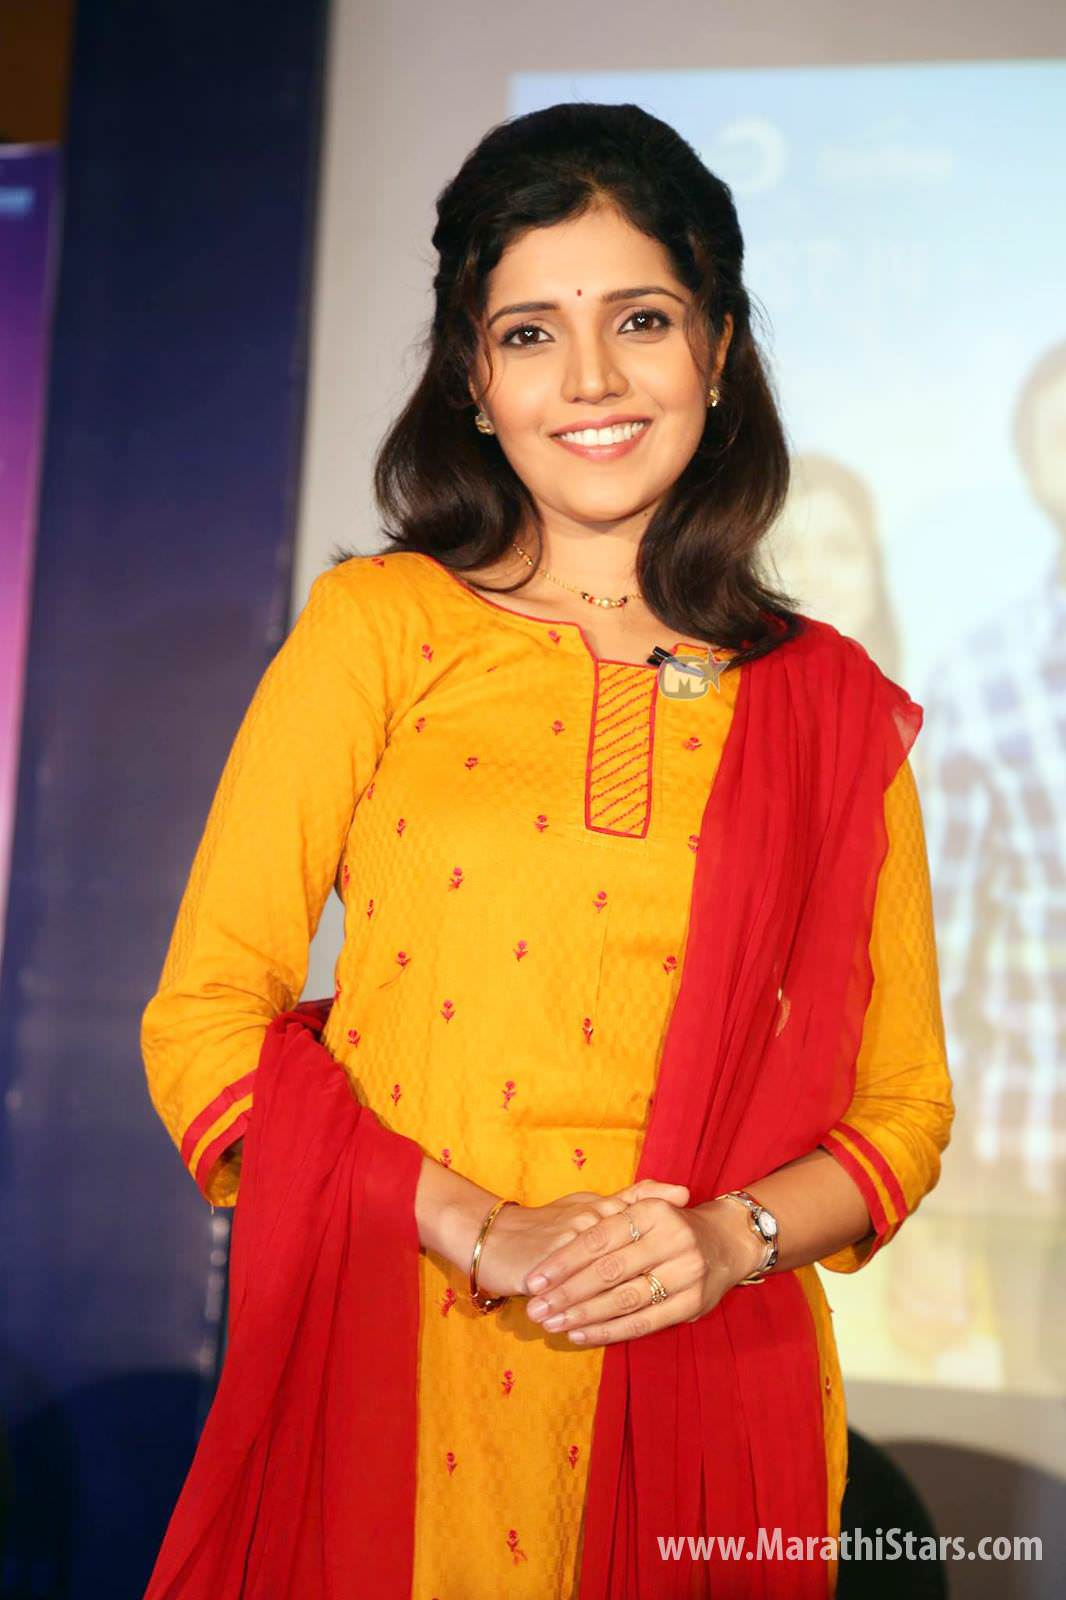 Mukta Barve Marathi Actress Biography Photos Filmography